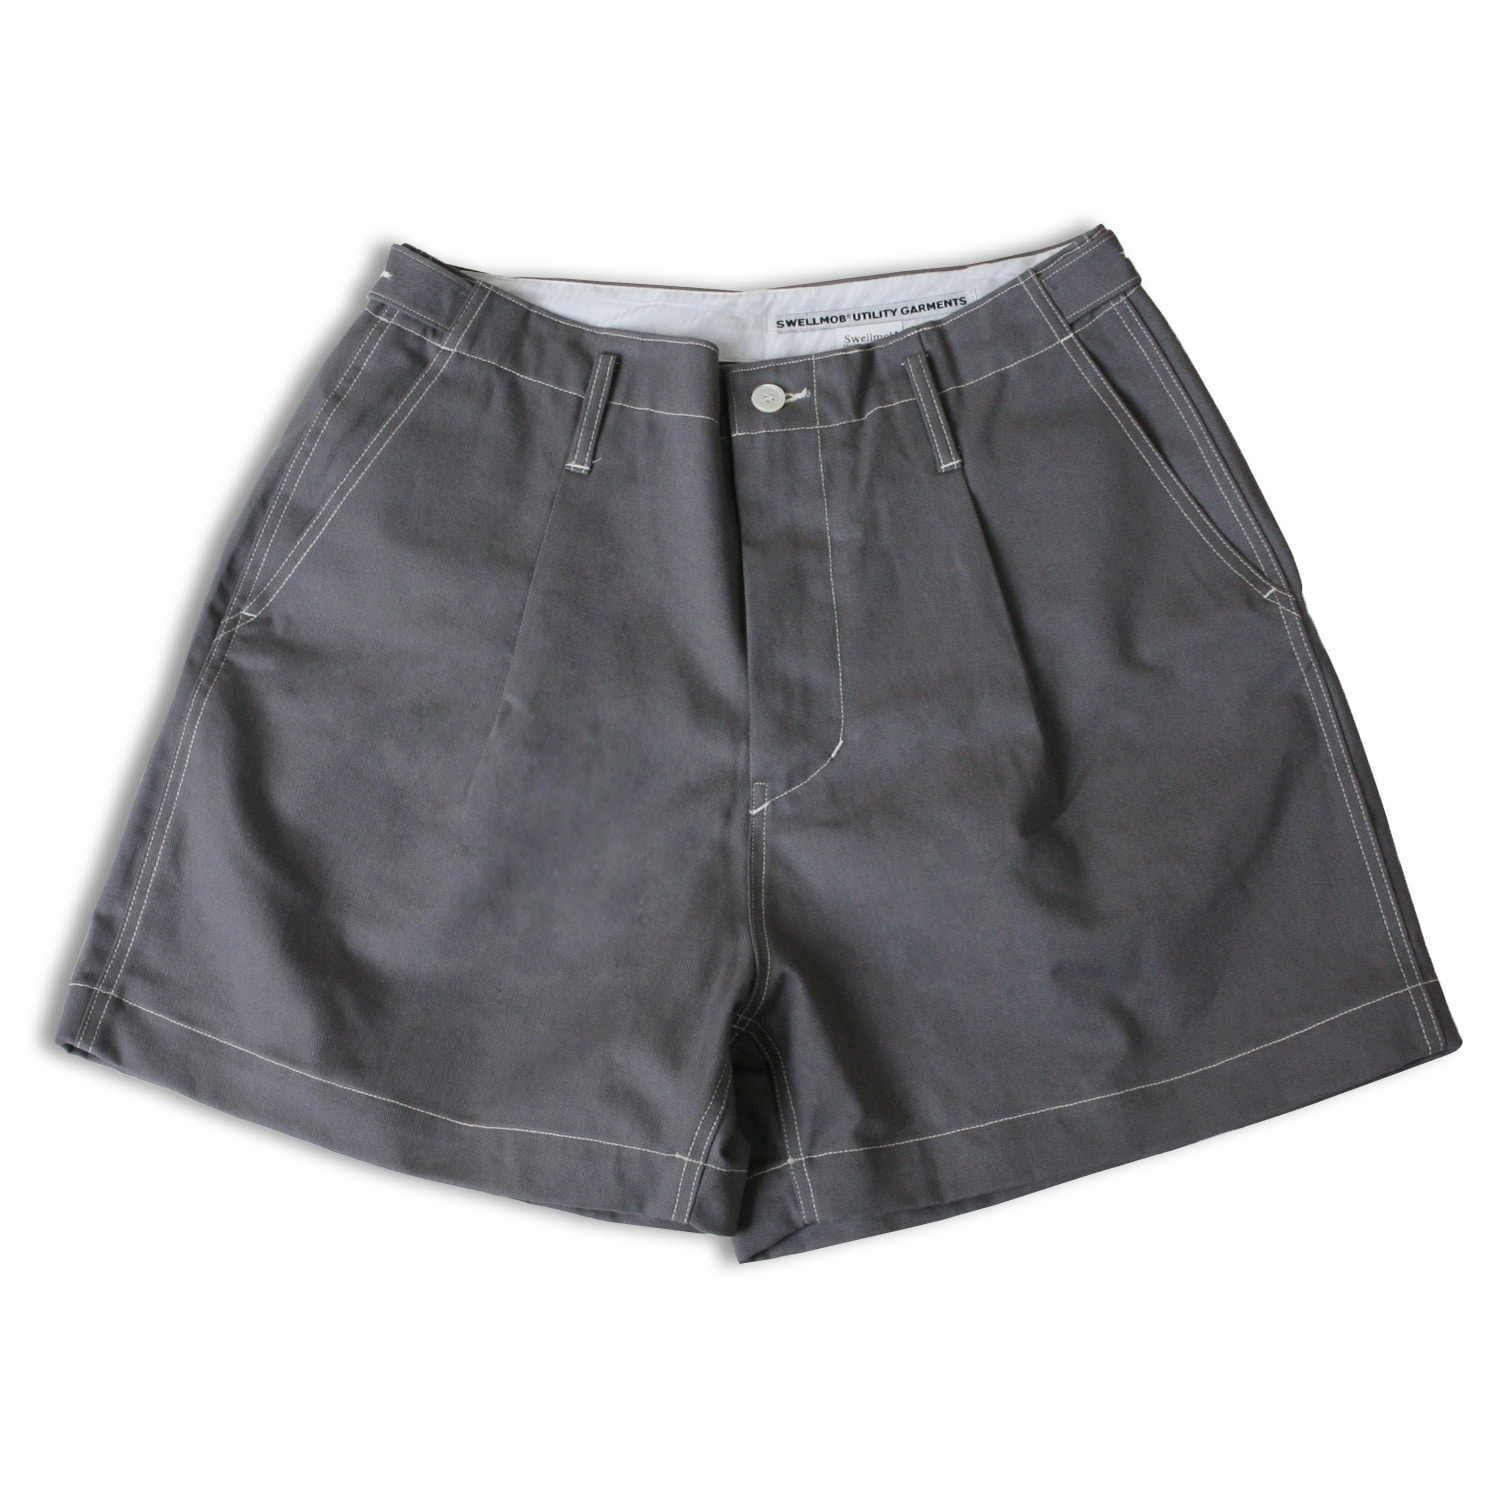 Officer shorts vol.2 grey